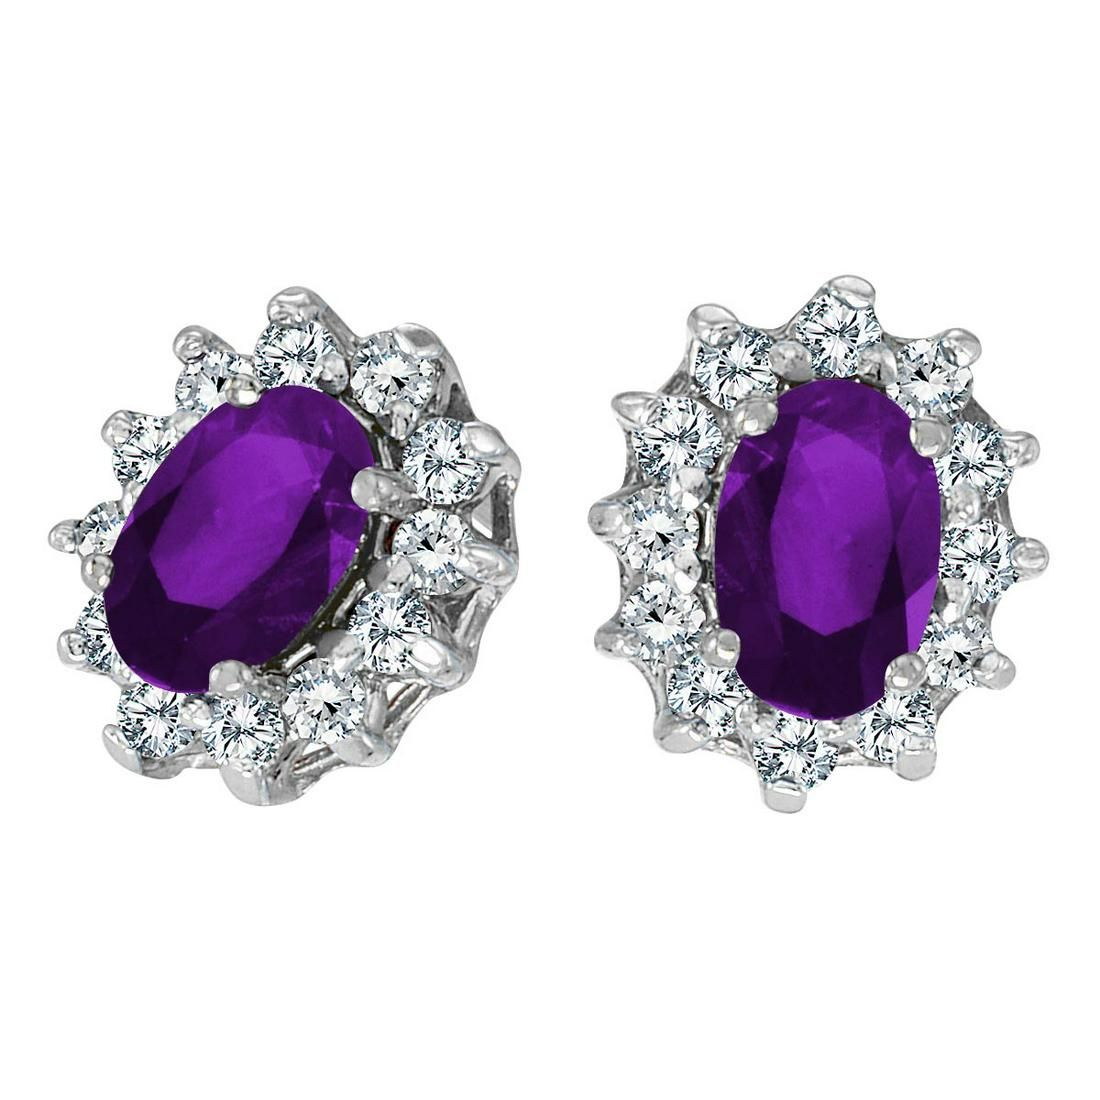 Certified 10k White Gold Oval Amethyst and 25 total CT